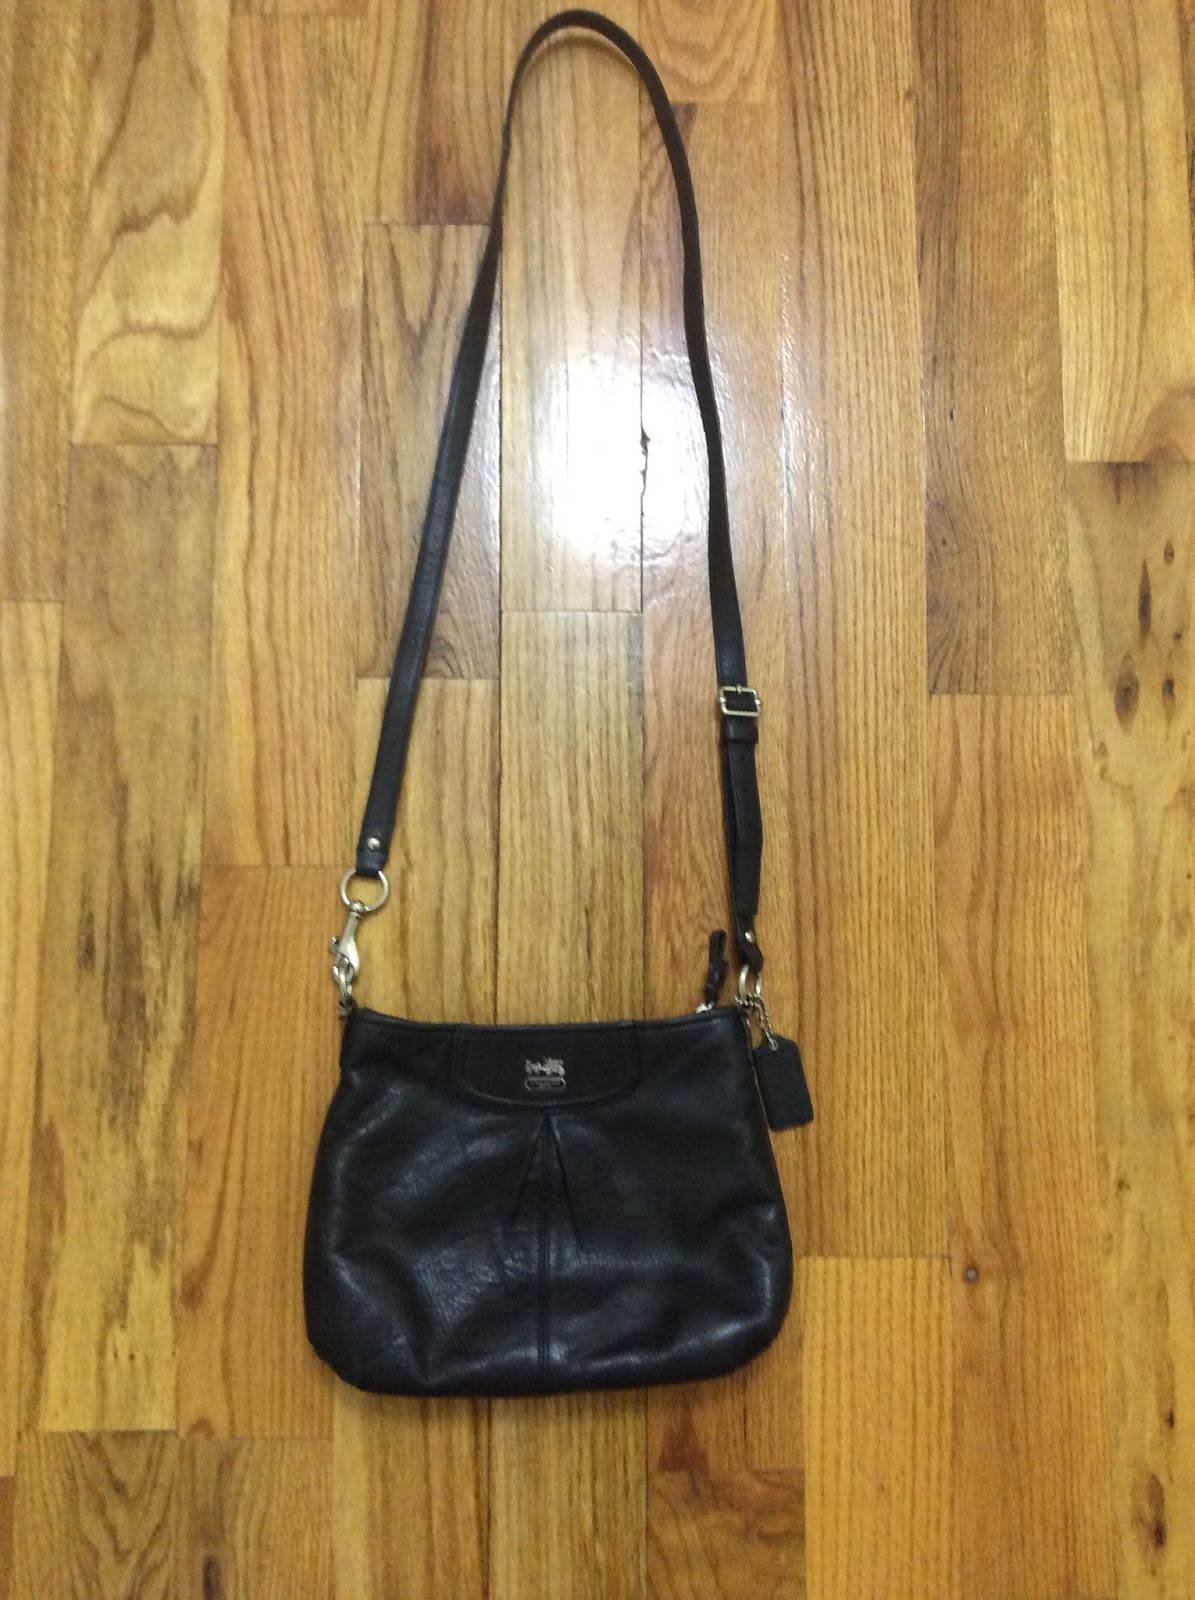 c8d8ff46b546b0 After a lot of research online and on YouTube. I finally decided to invest  in a Gucci Soho Leather Disco Bag. Here in the U.S., it is $980.